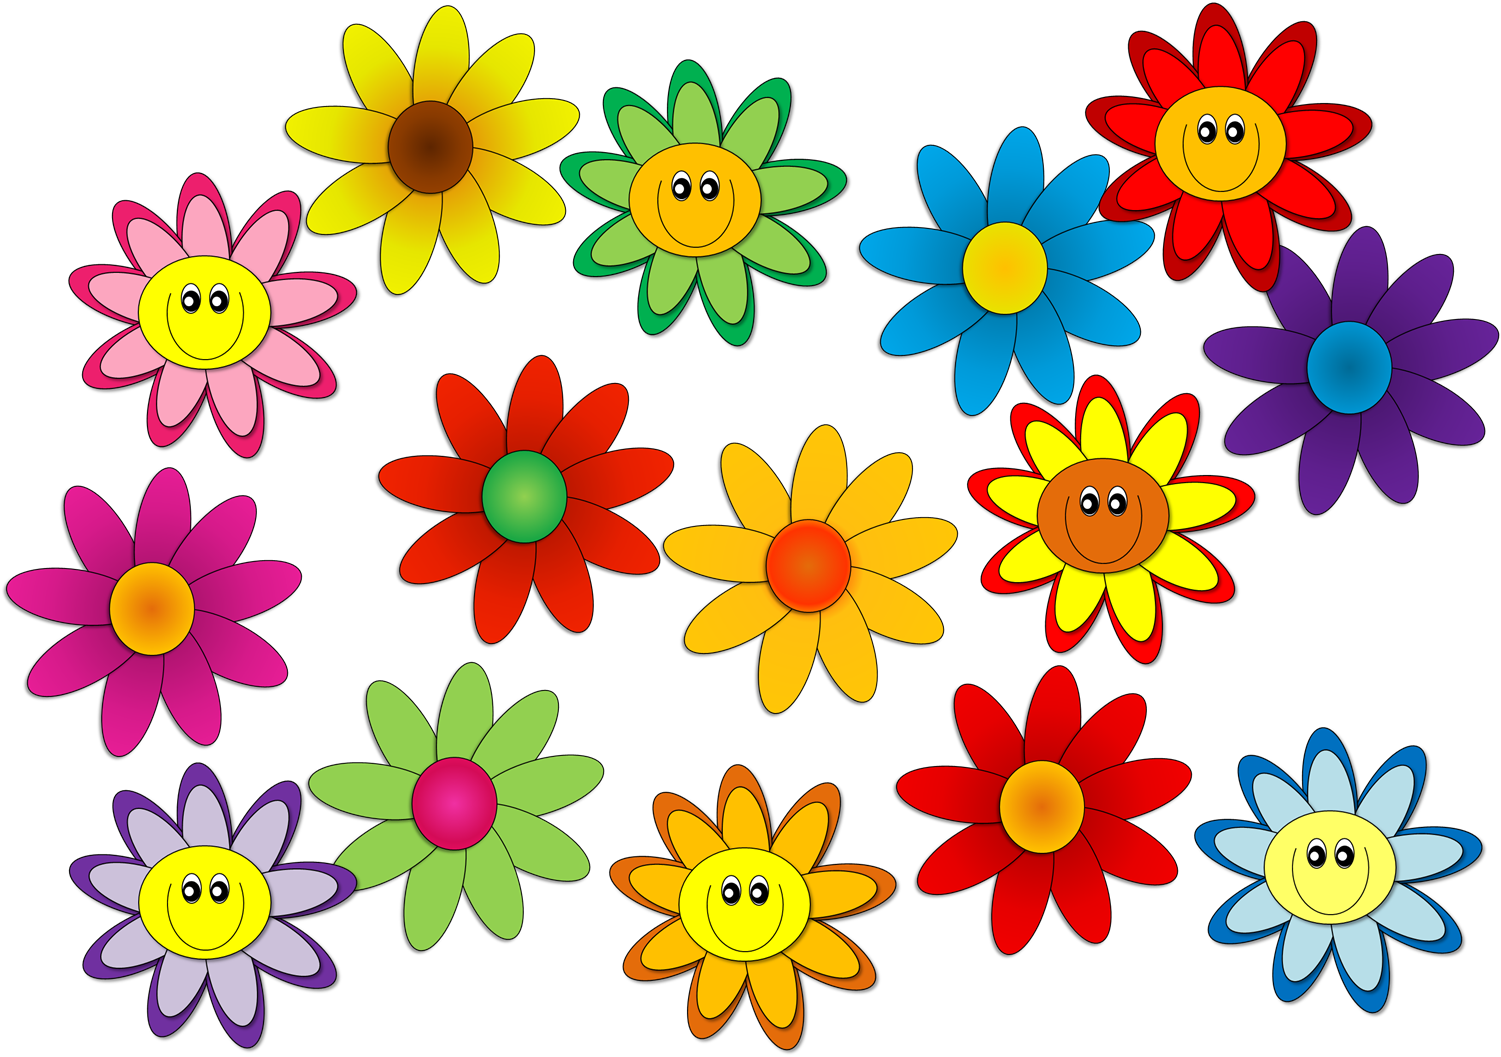 Flower group clipart graphic transparent stock One Teacher's Adventures: August 2014 graphic transparent stock